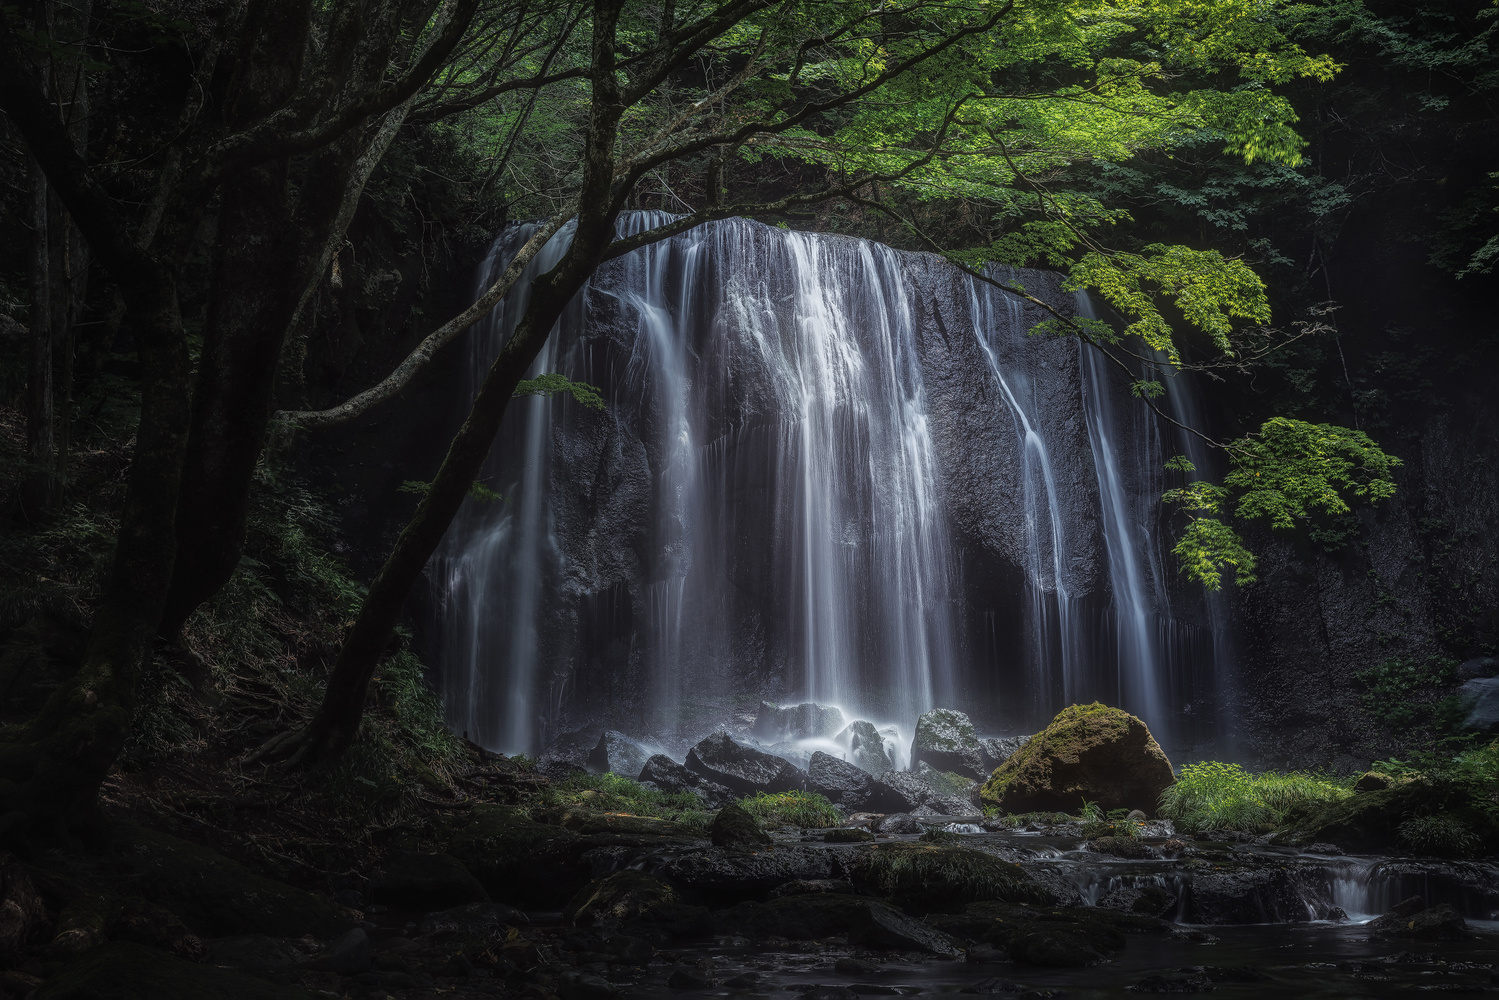 In the glow of light by Shumon Saito